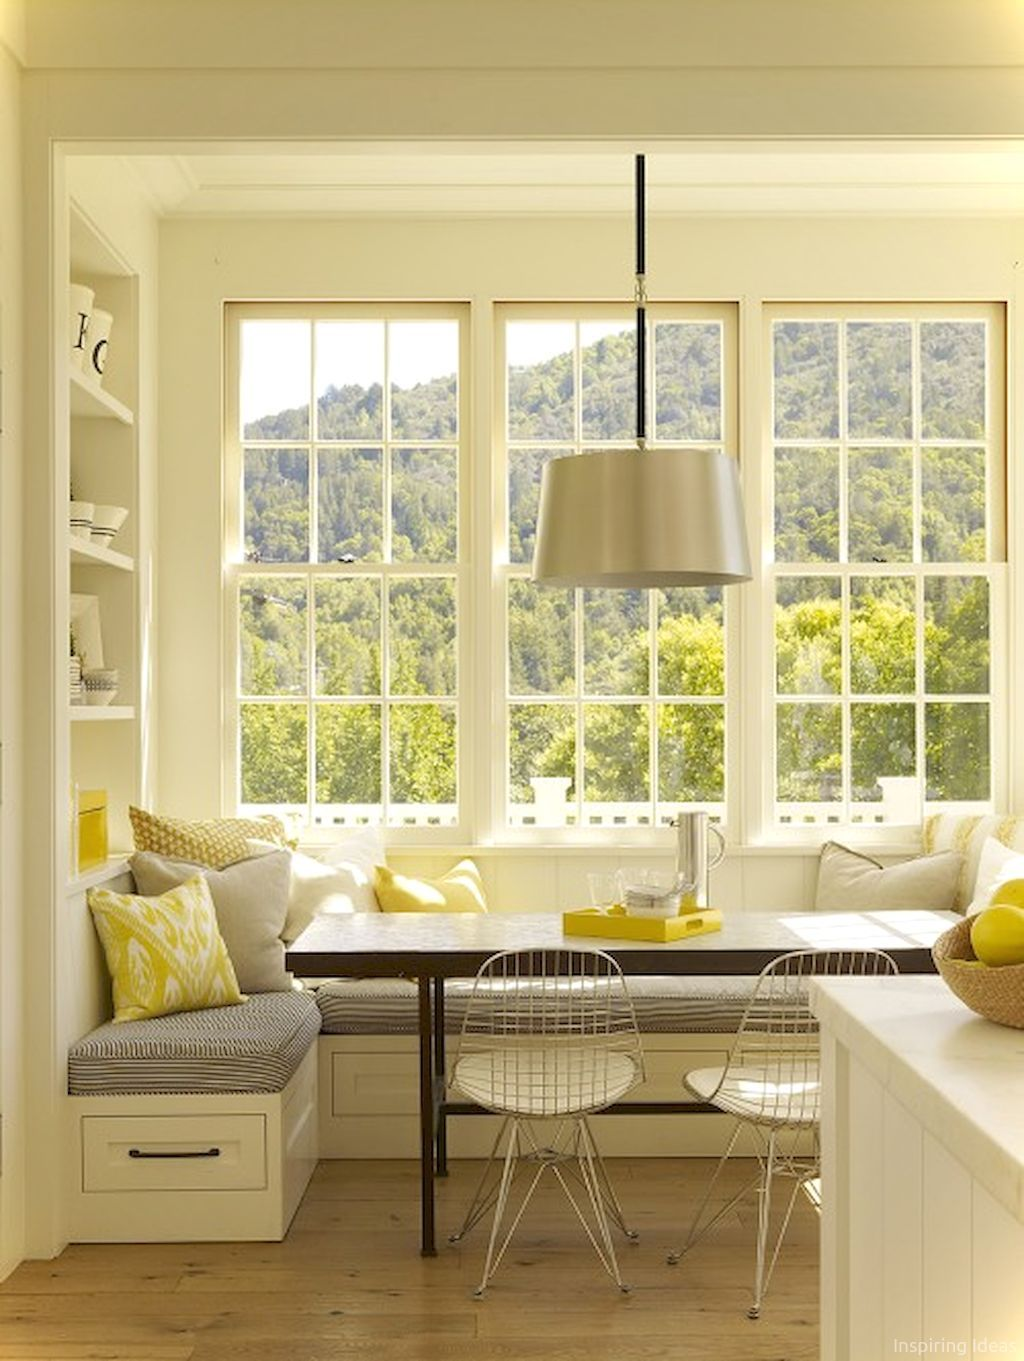 Window seat ideas living room   nice banquette seating ideas for kitchen  banquettes kitchens